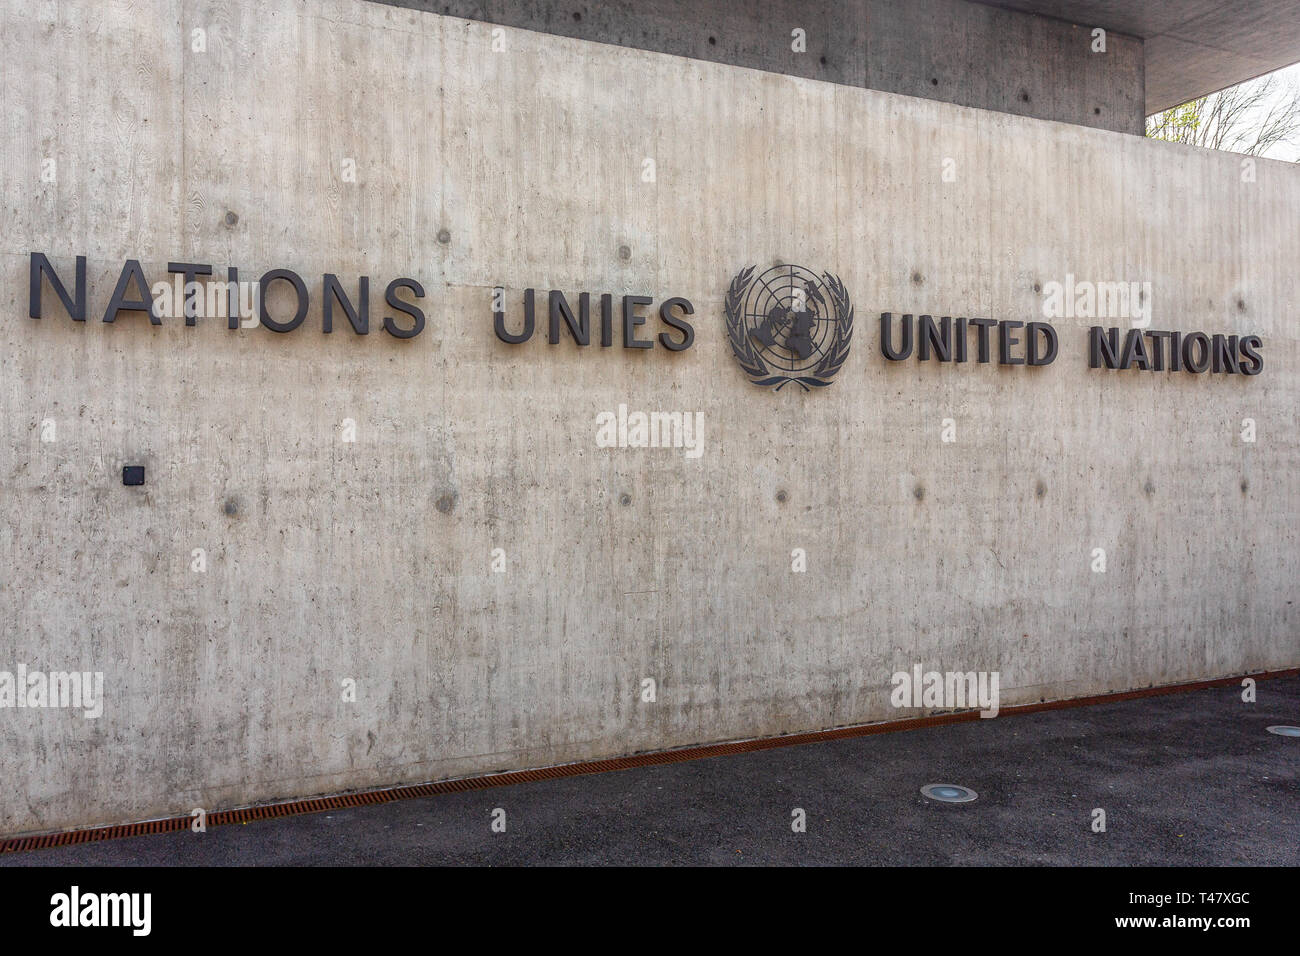 United Nations Building in Geneva (Switzerland). The United Nations (UN) is an international organization of 193 states. - Stock Image